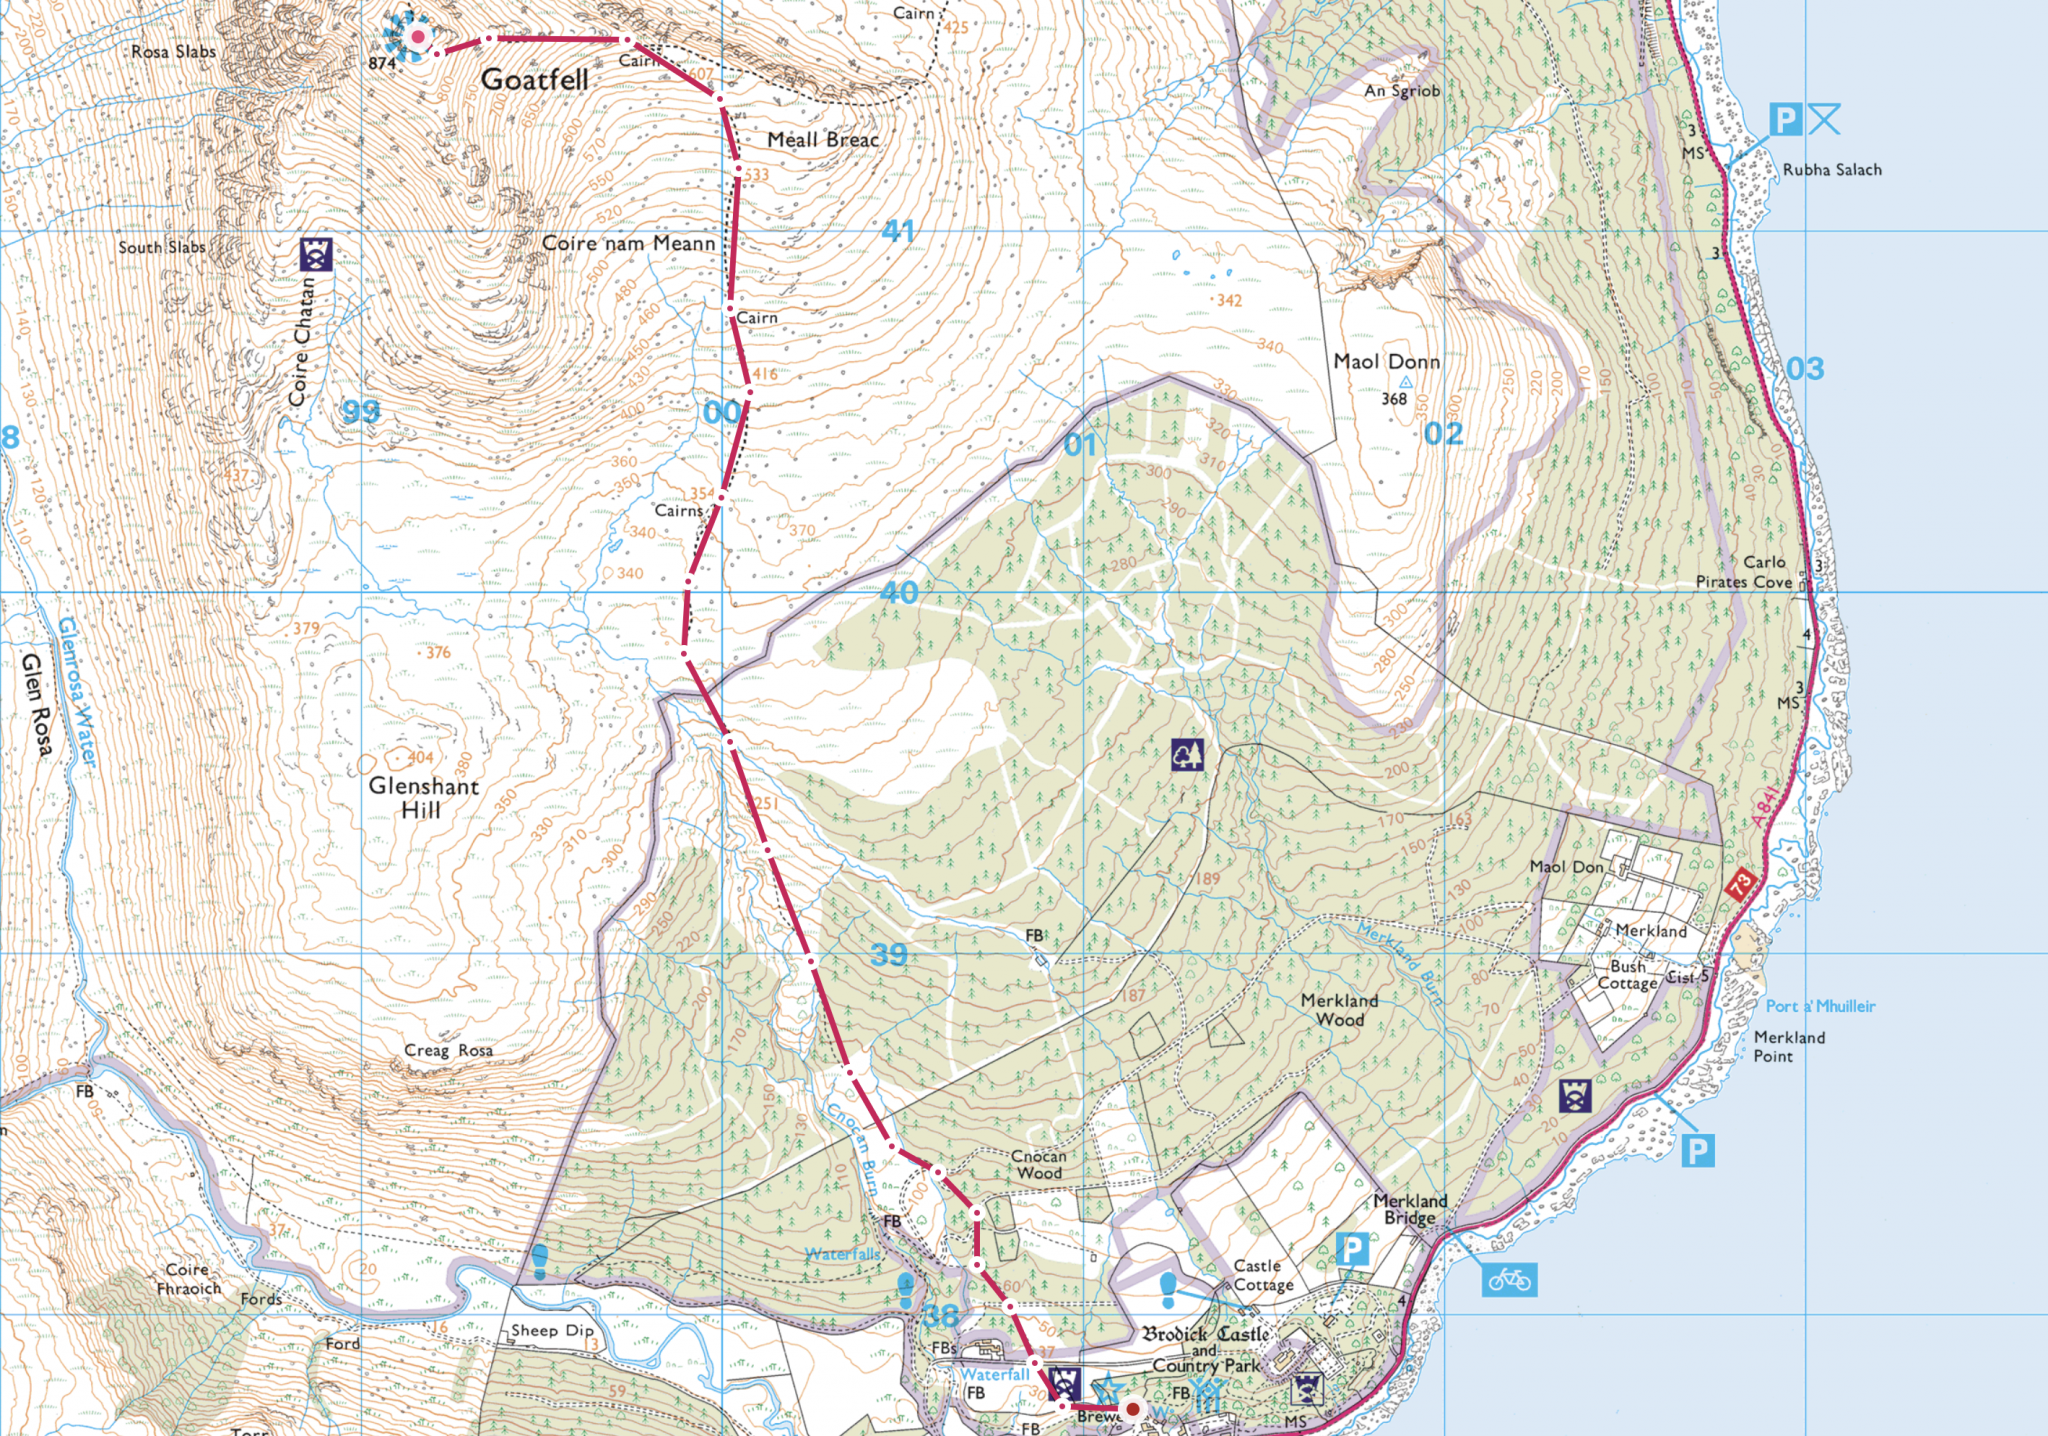 Screen shot of route down Goatfell from OS maps